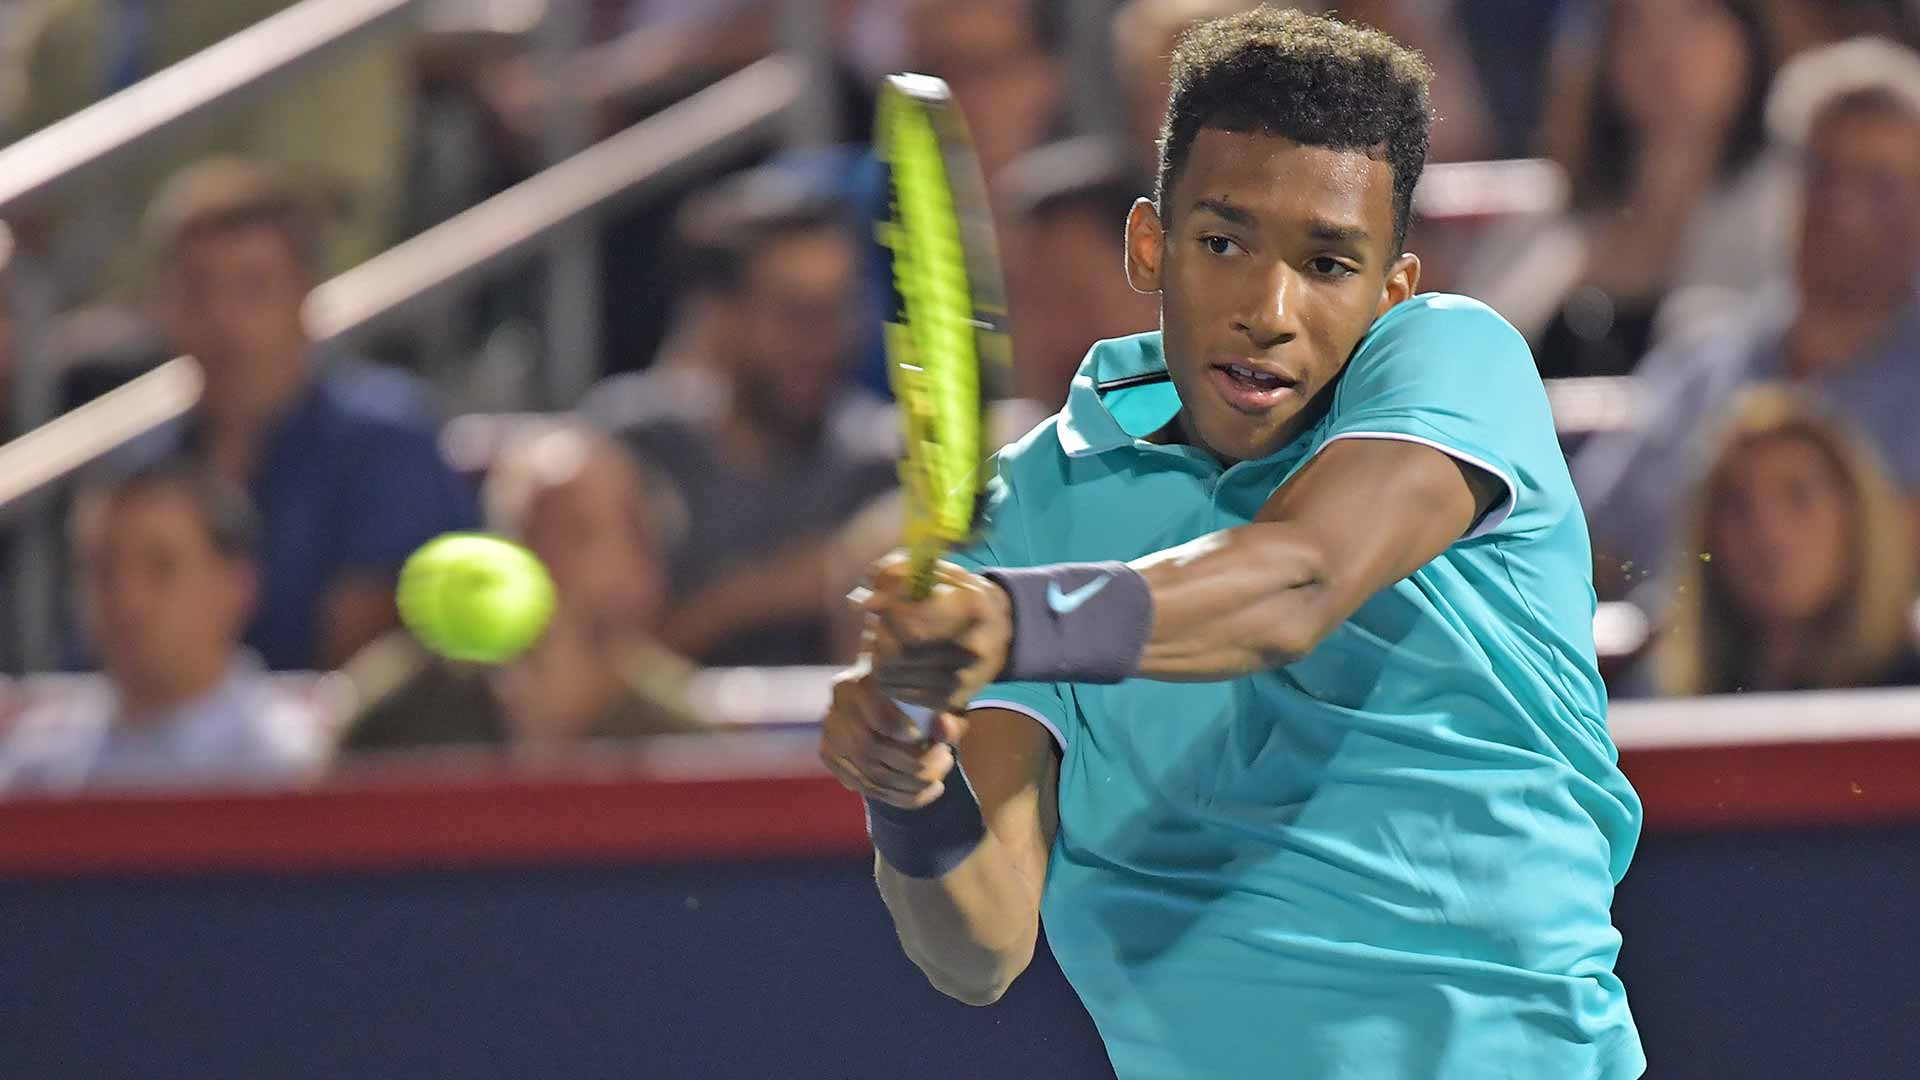 Felix Auger-Aliassime moves on in Montreal on Wednesday at the Coupe Rogers